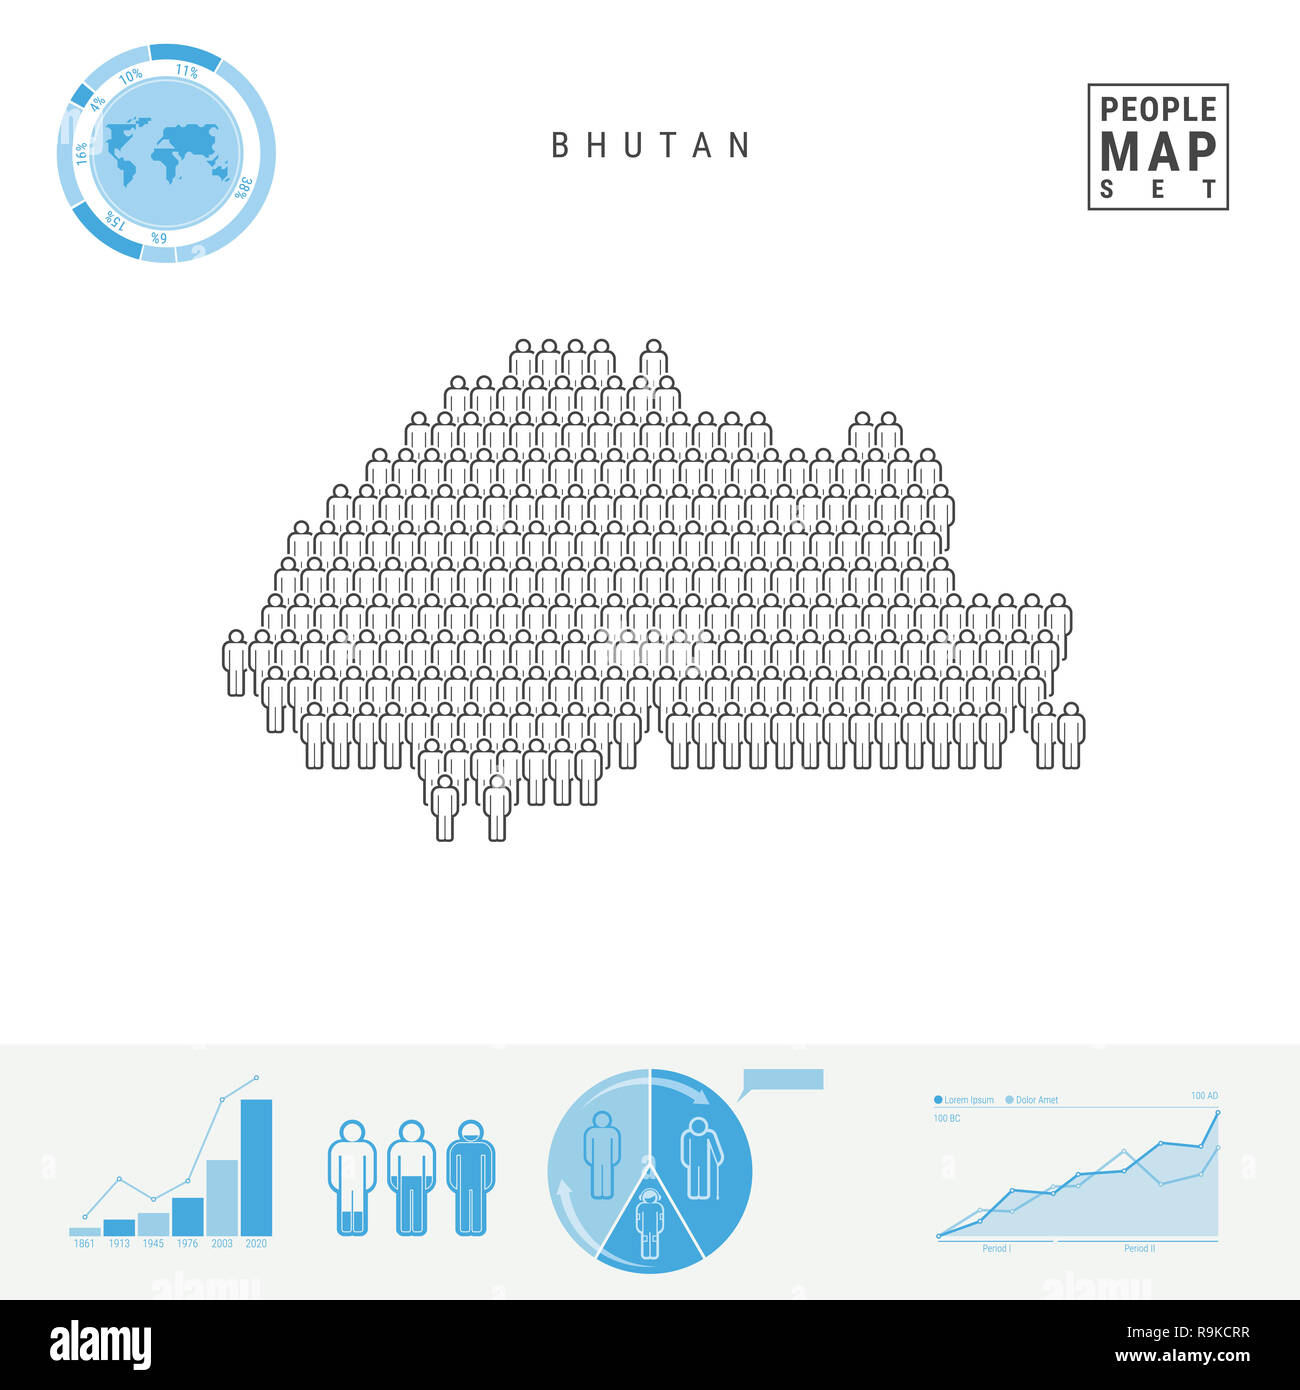 Bhutan People Icon Map. People Crowd in the Shape of a Map of Bhutan. Stylized Silhouette of Bhutan. Population Growth and Aging Infographic Elements. - Stock Image